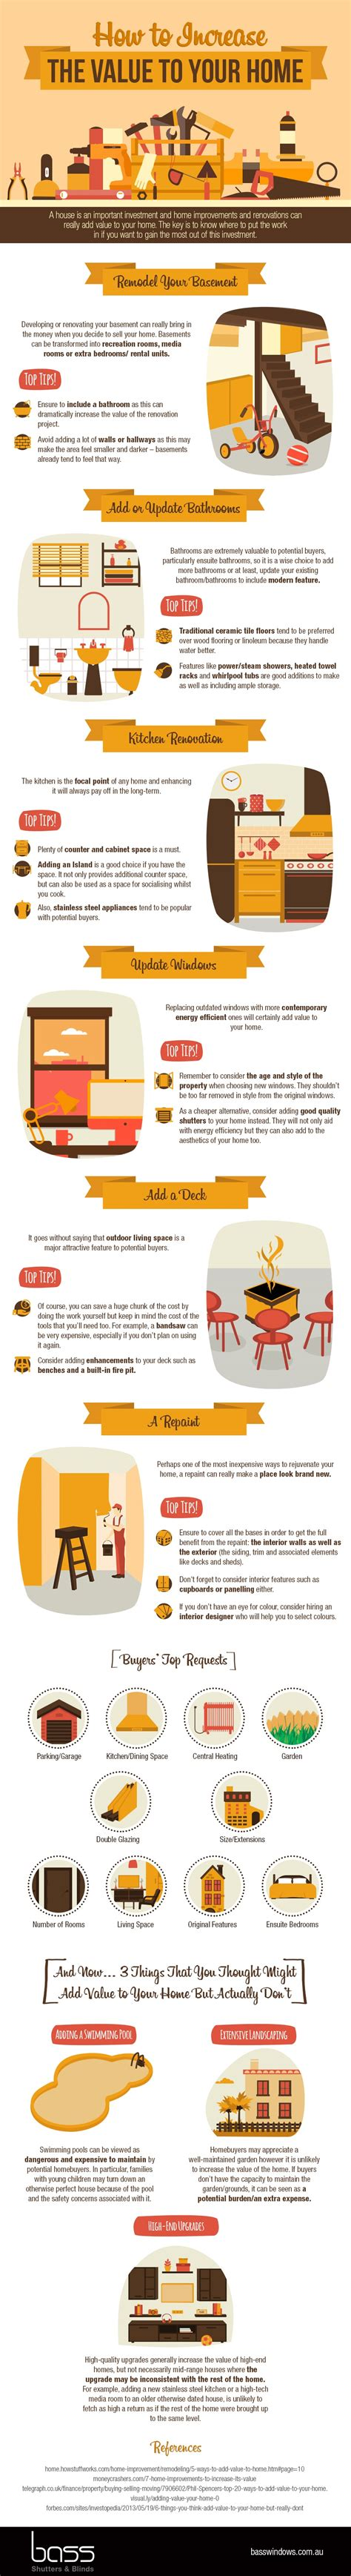 how to increase the value to your home infographic